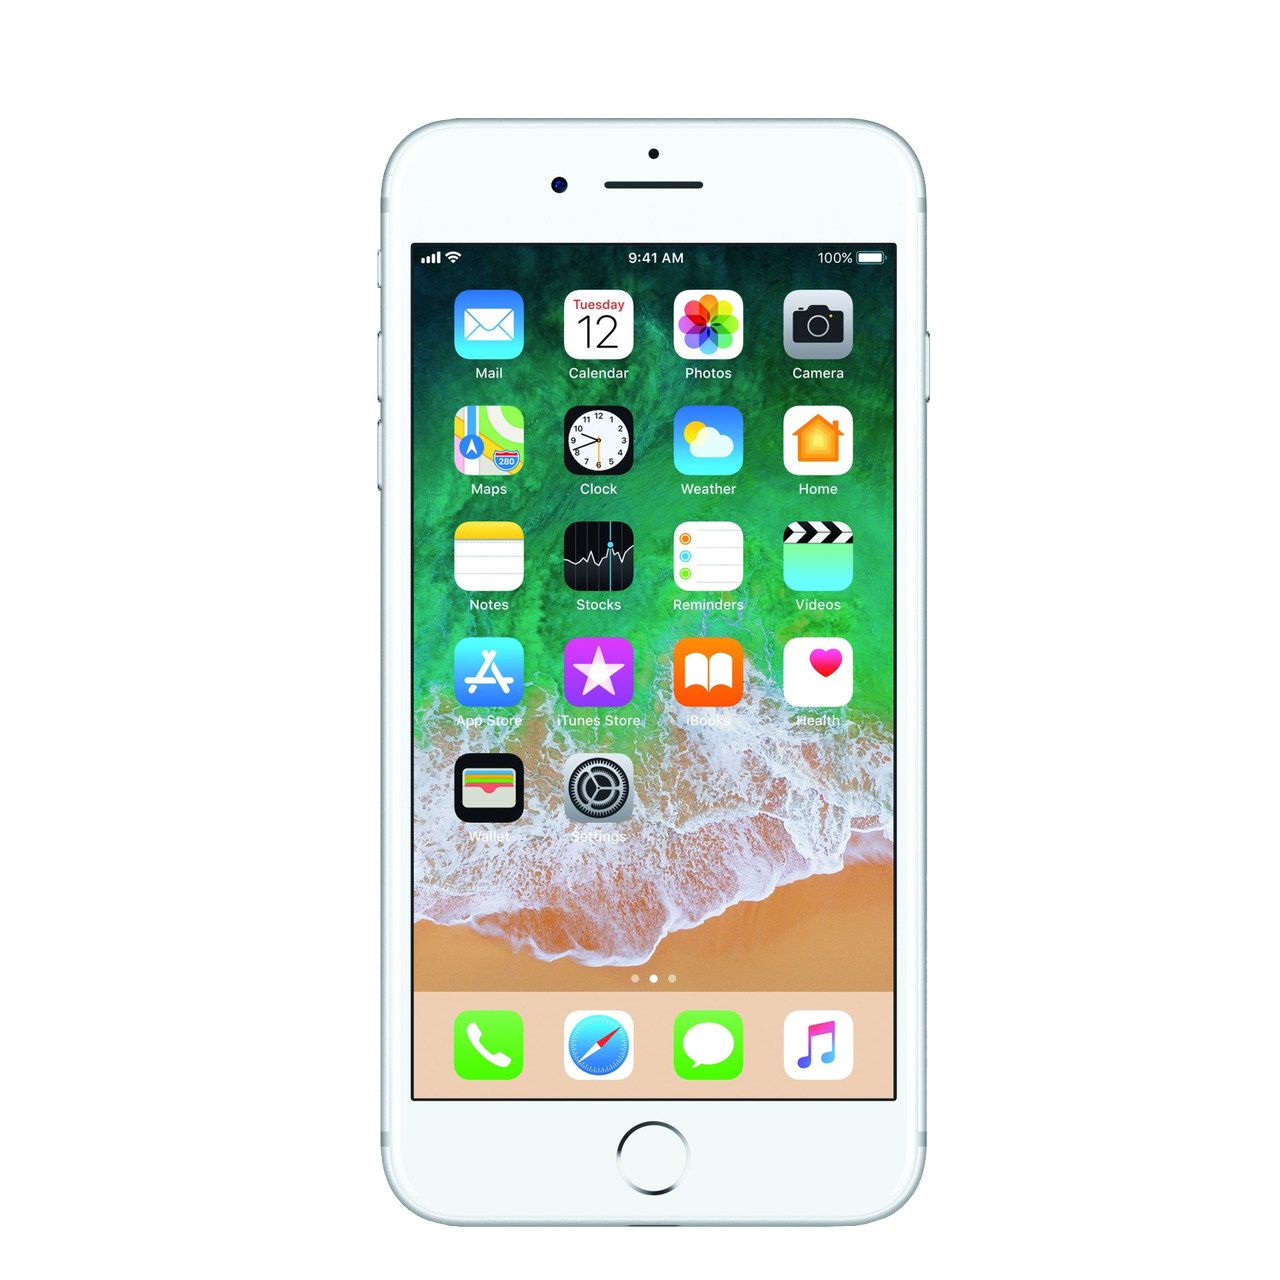 iphone-6-thumbnail-75-percent.jpg